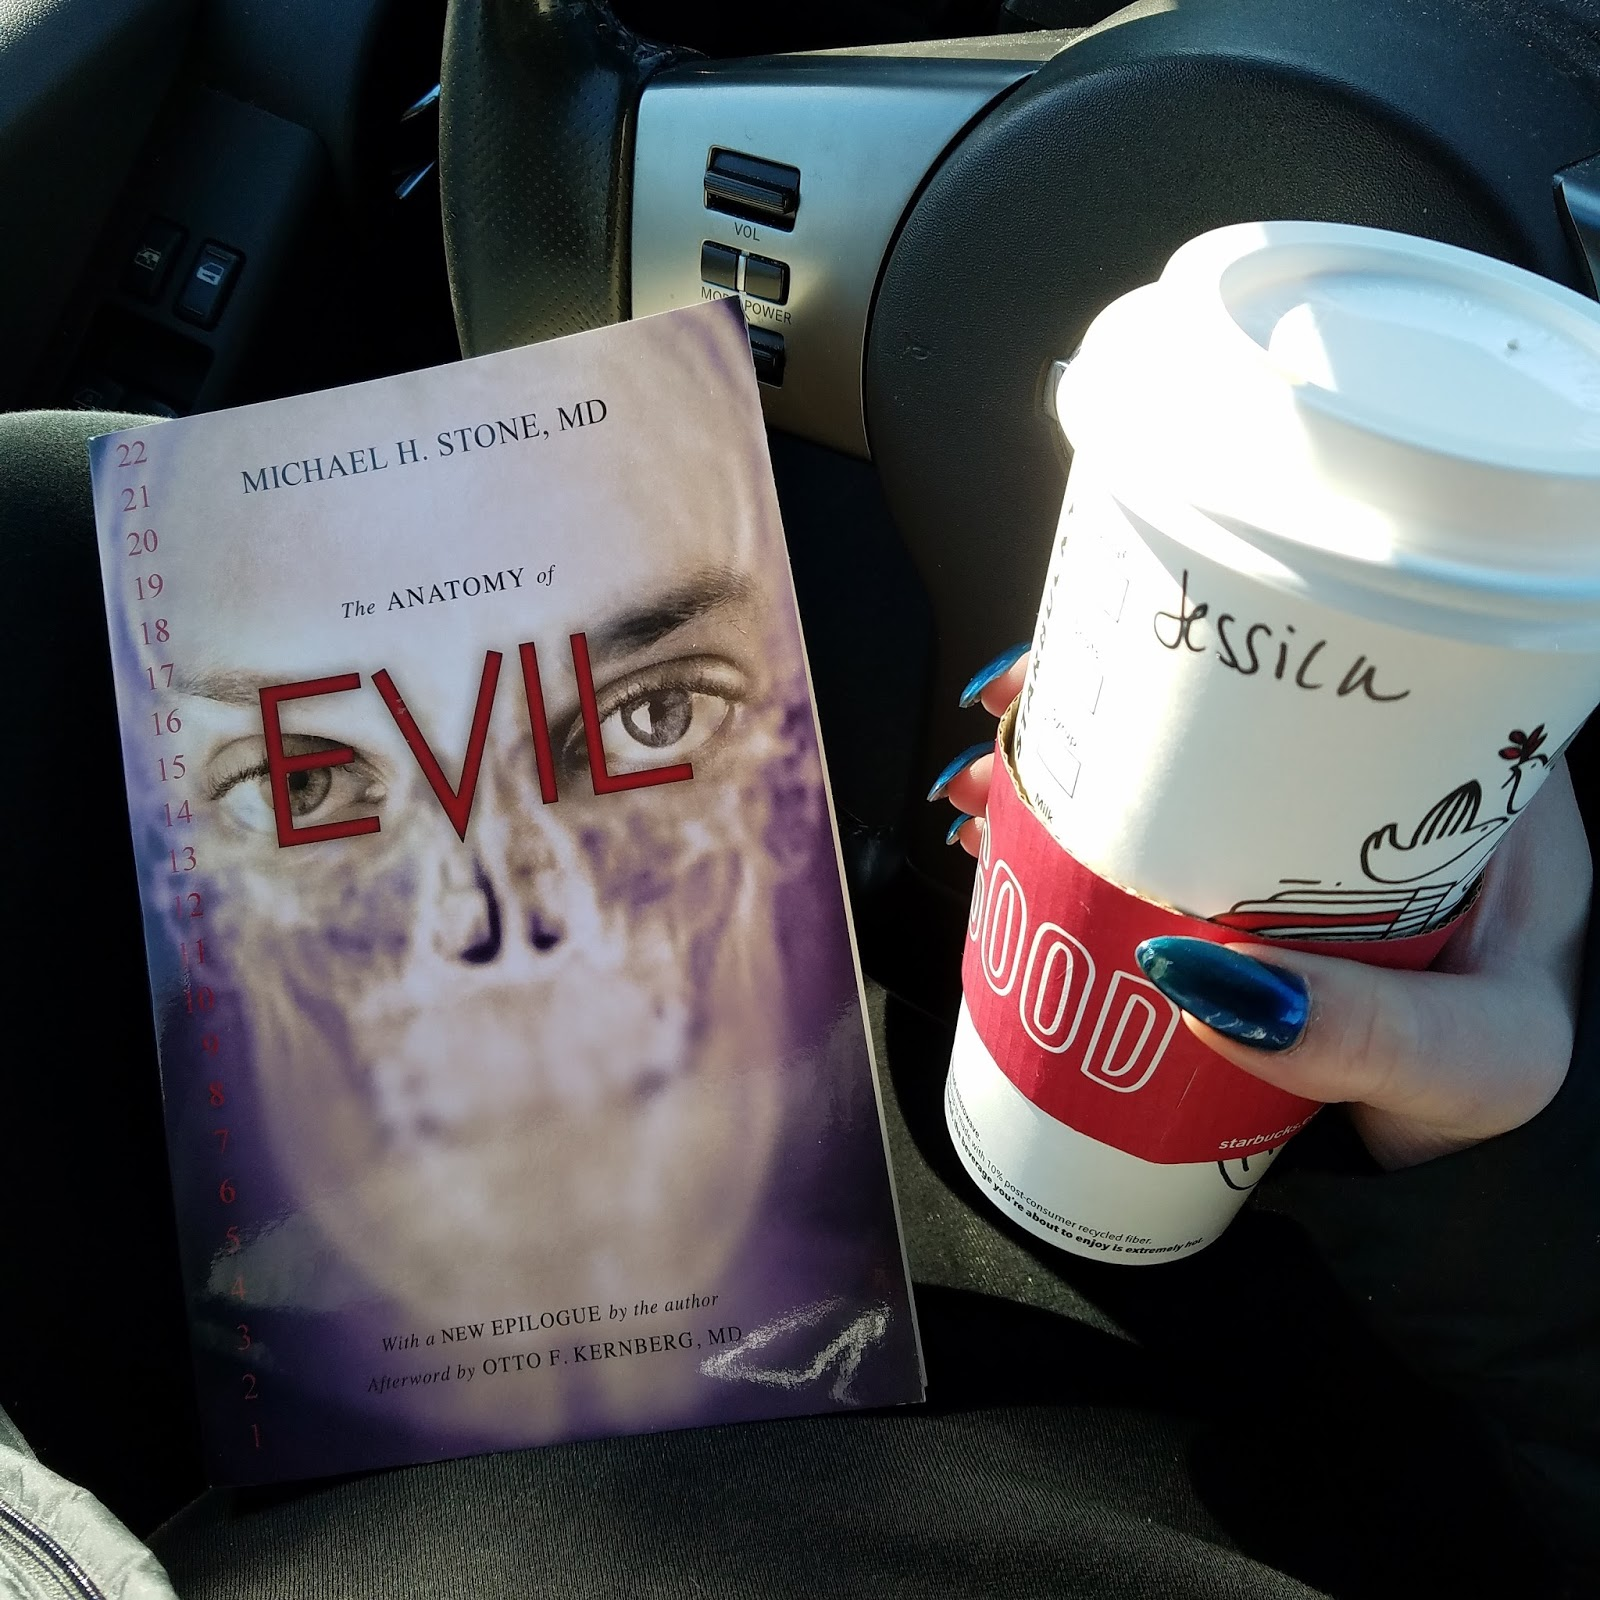 allthebookreviews: The Anatomy of Evil by Michael H. Stone ...